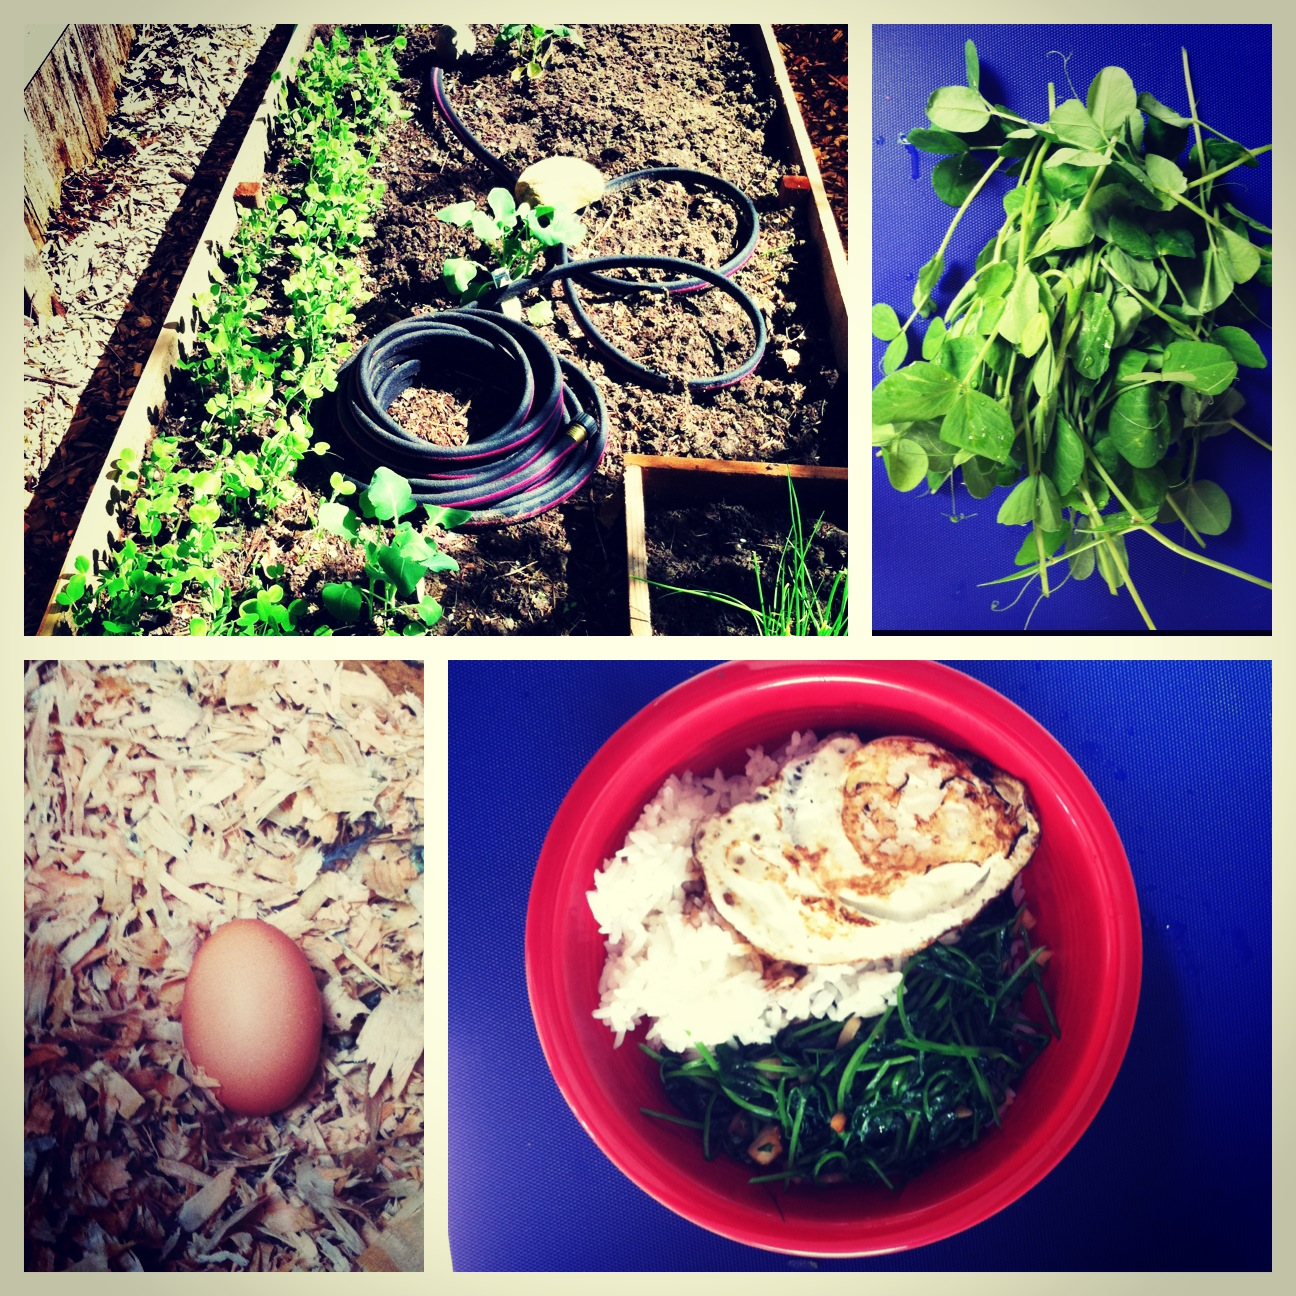 Collage of Gardening Images